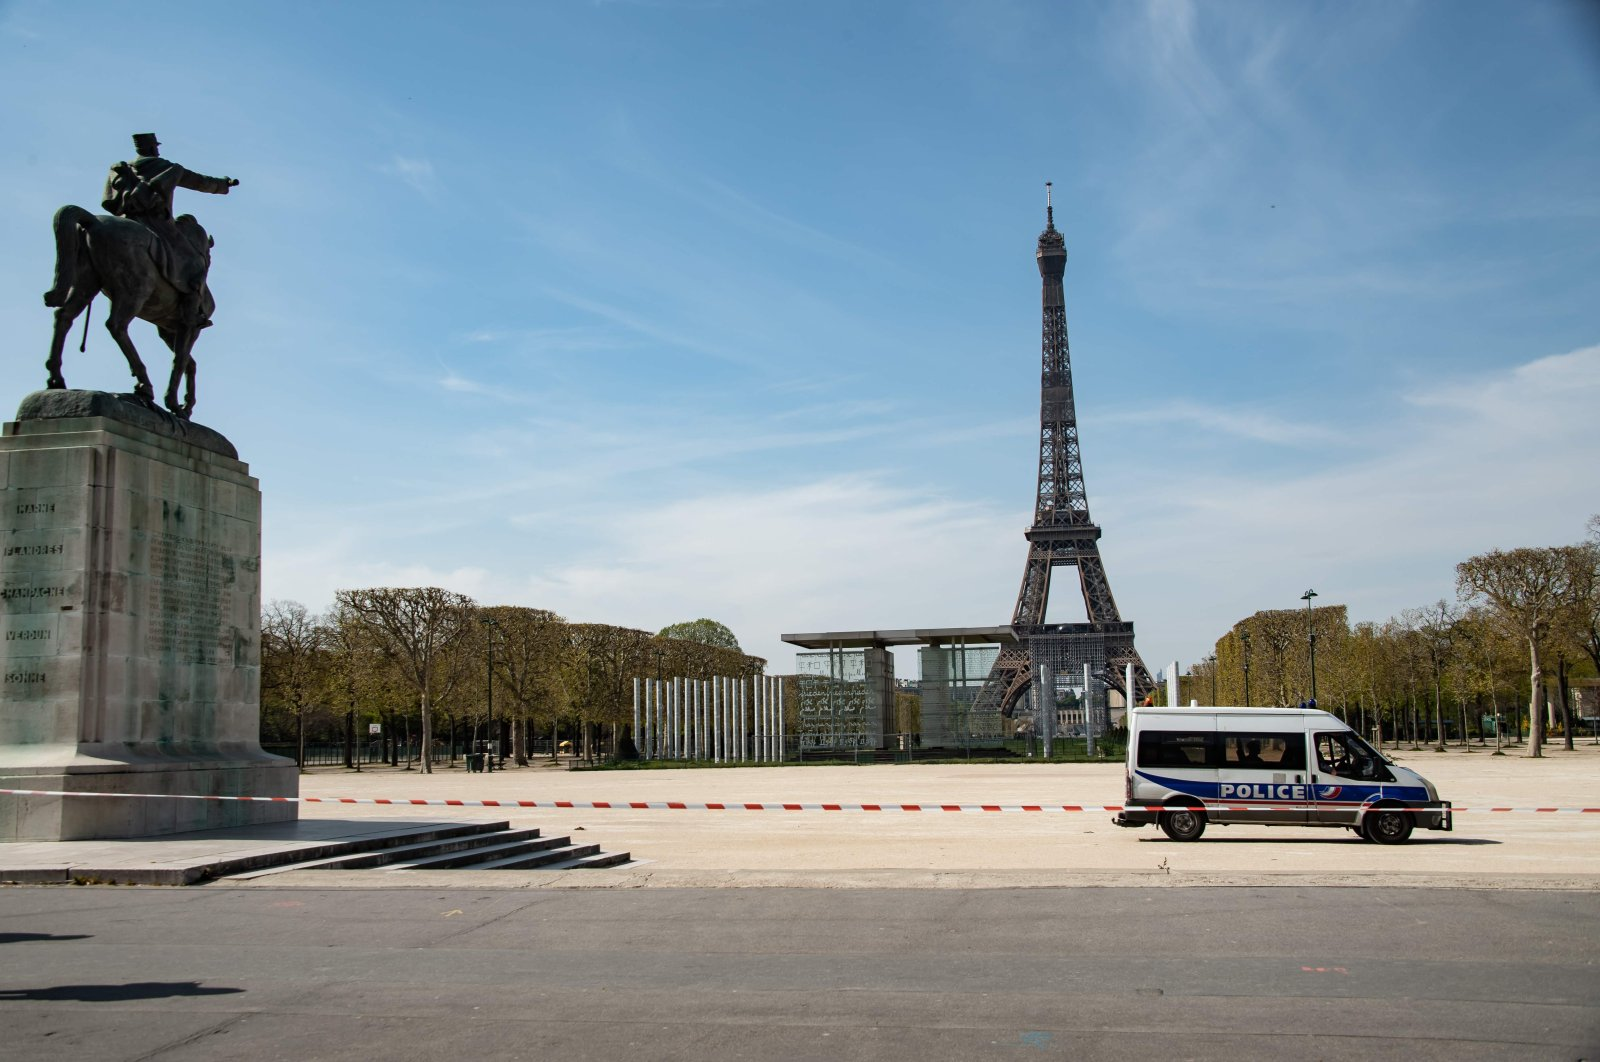 A police van is parked in the closed Jardin du Champs de Mars garden in front of the Eiffel tower in Paris, France, Tuesday, April 7, 2020. (AFP Photo)